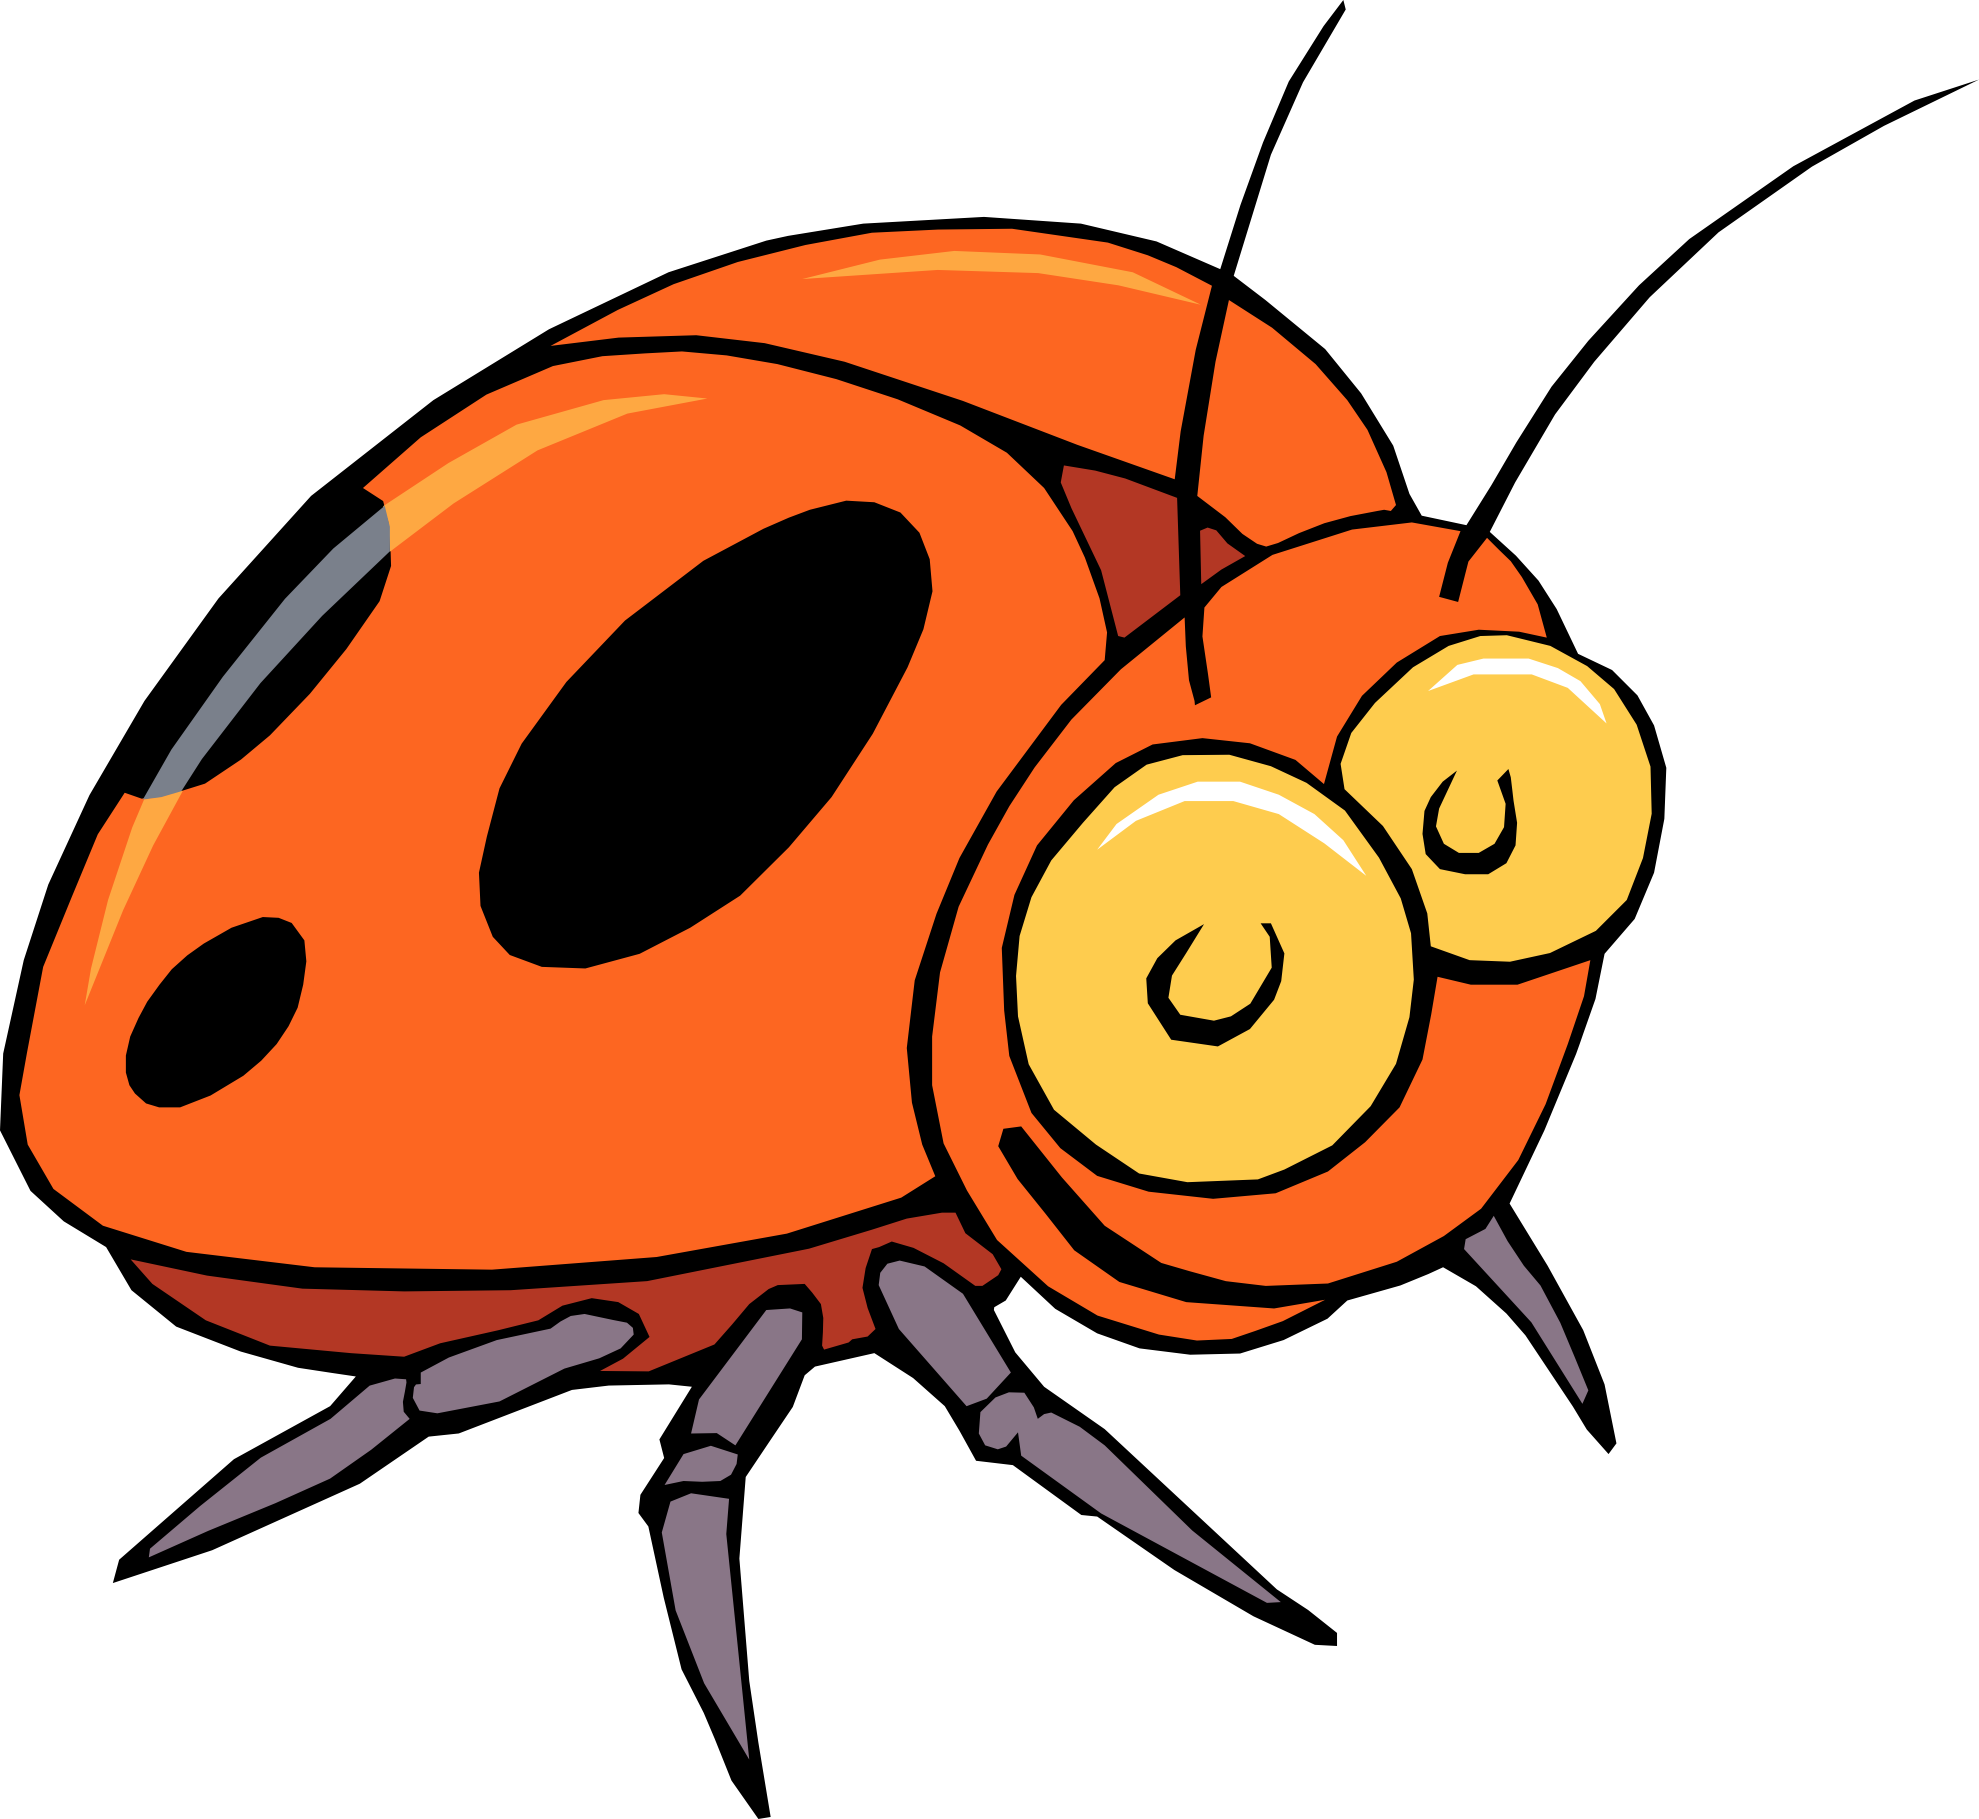 Cartoon Bugs And Insects.